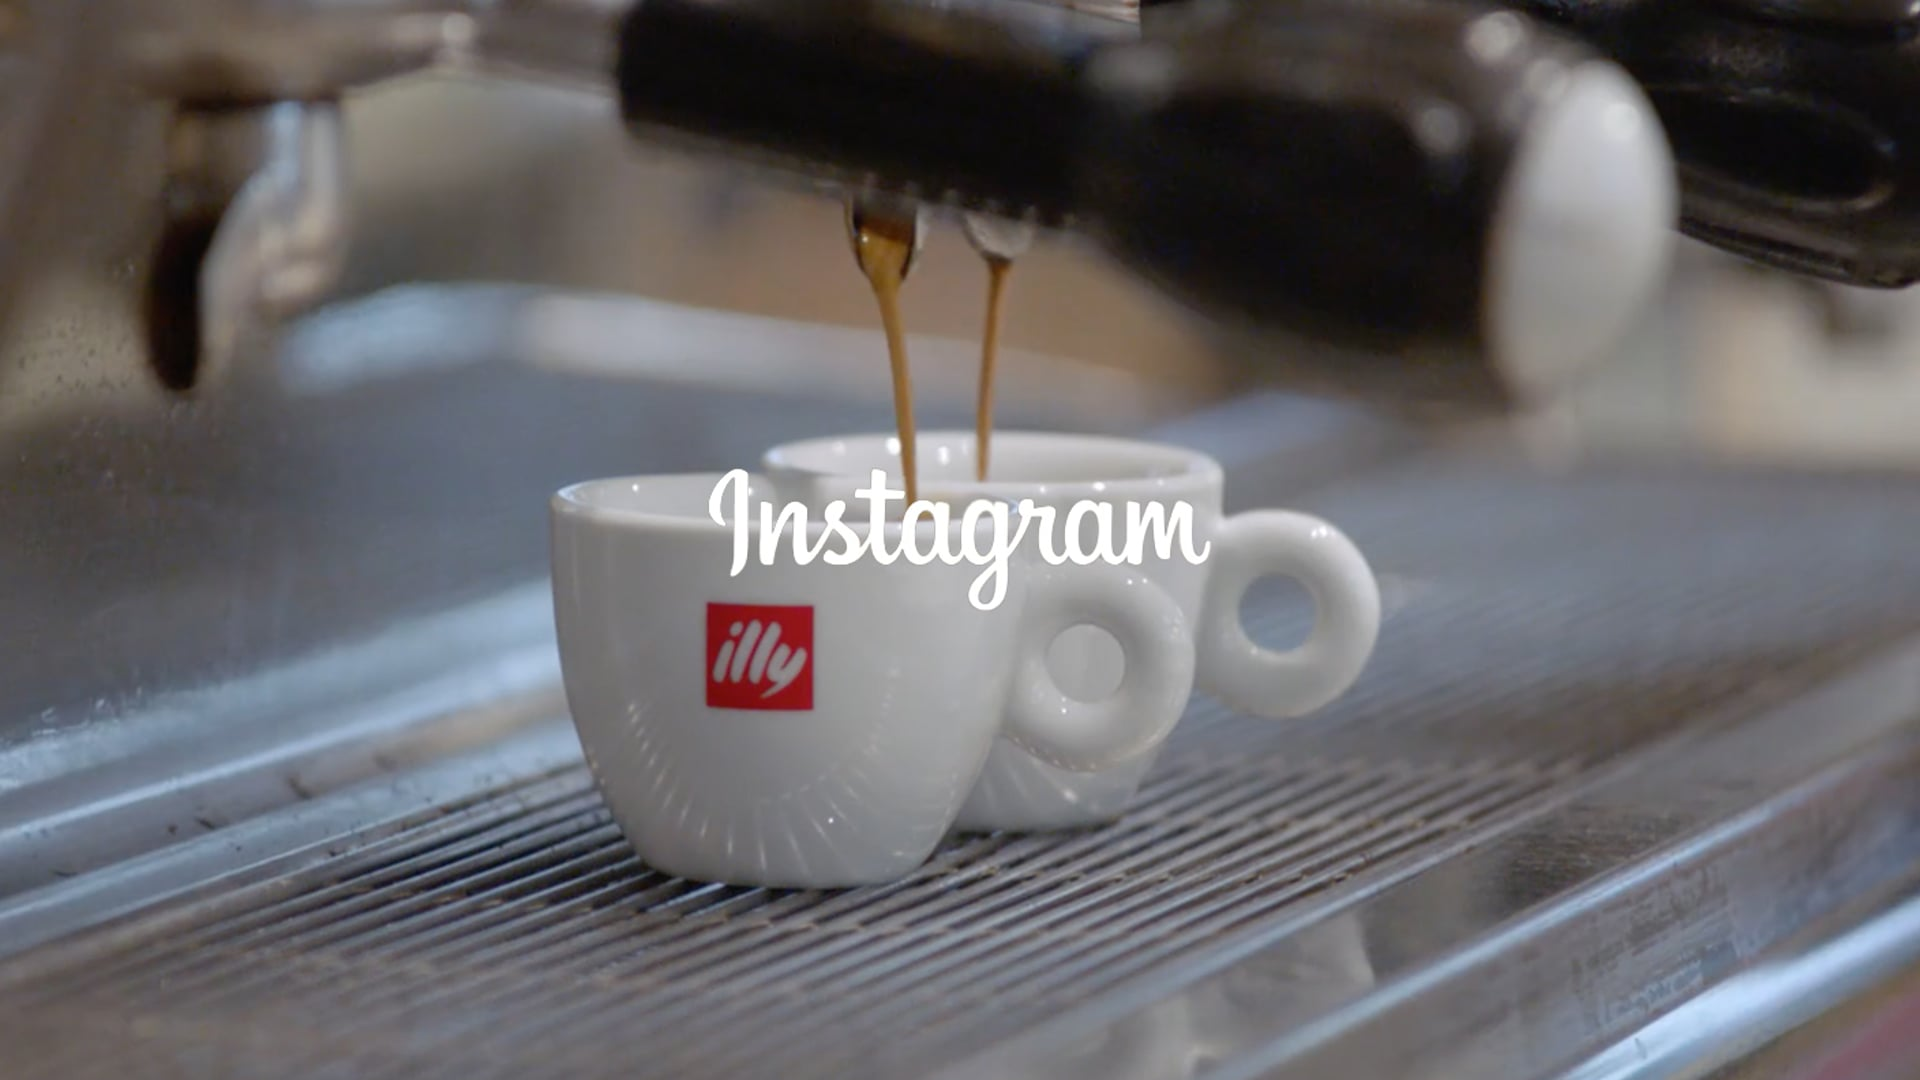 Illy Coffee on Instagram